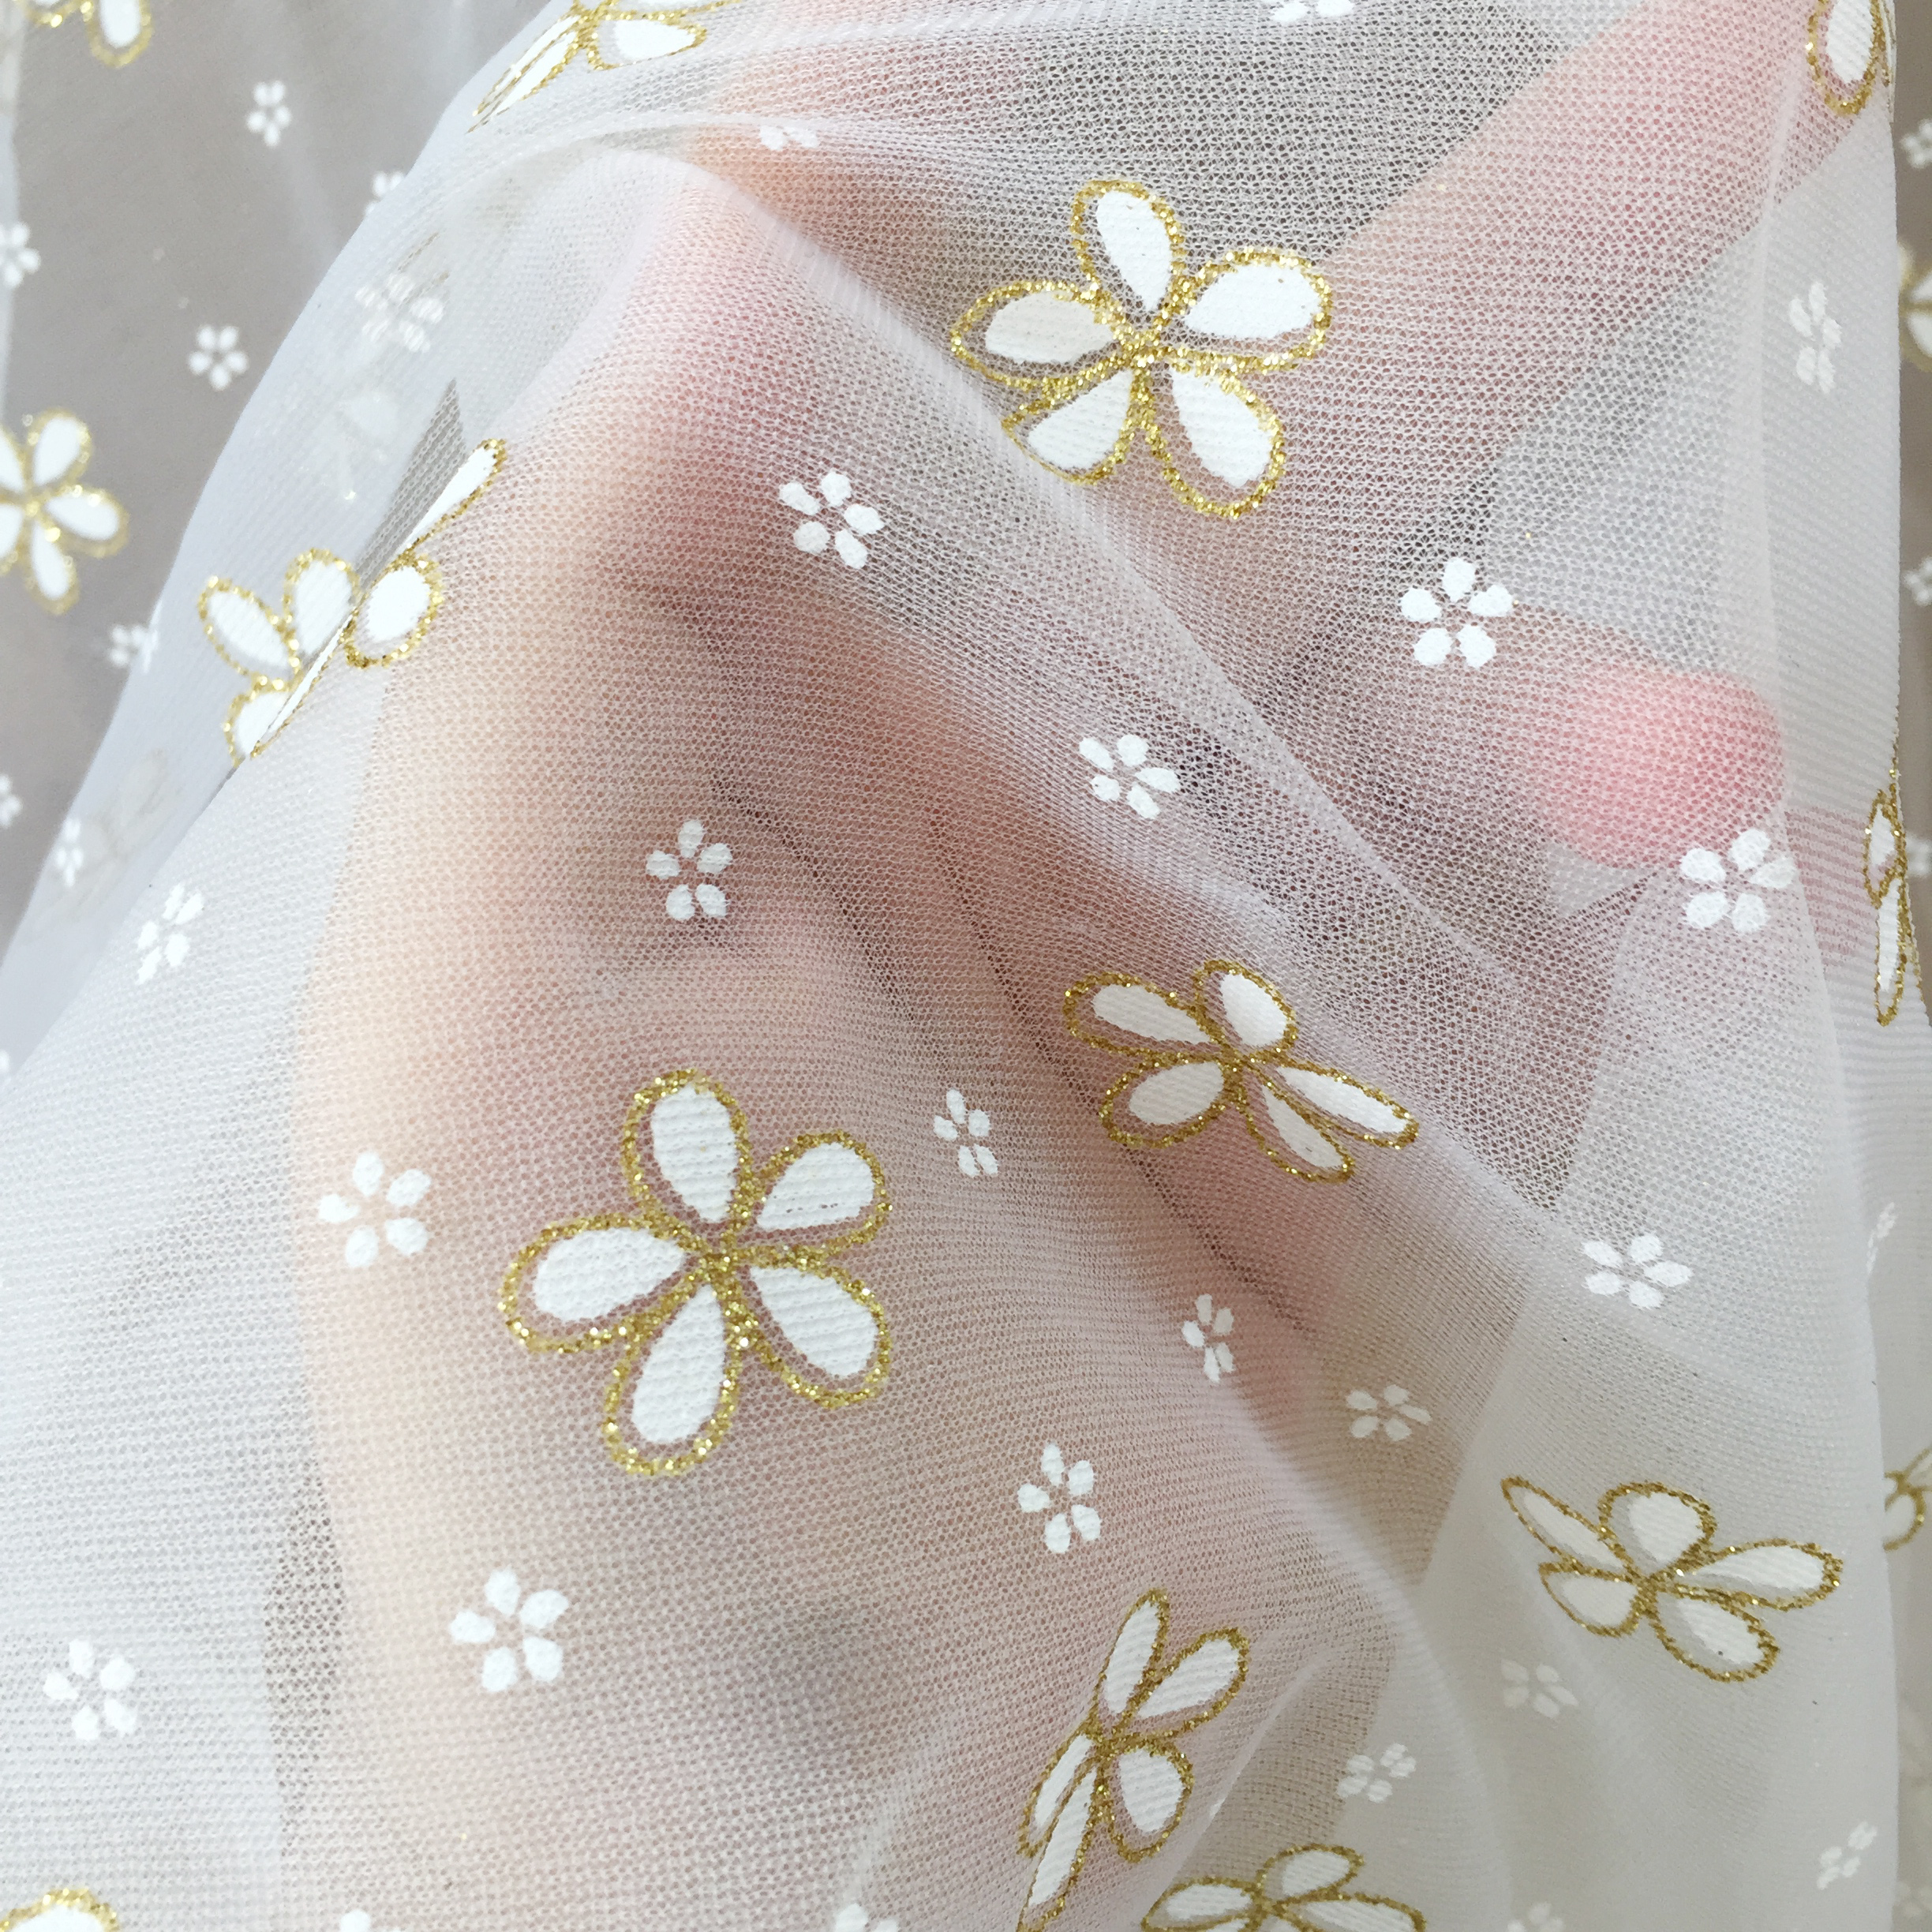 5 Yards Daisy Tulle Lace Fabric with Gold Glitter Embroidery for Bridal Gown Prom Dress DIY Craft 150cm Wide-0